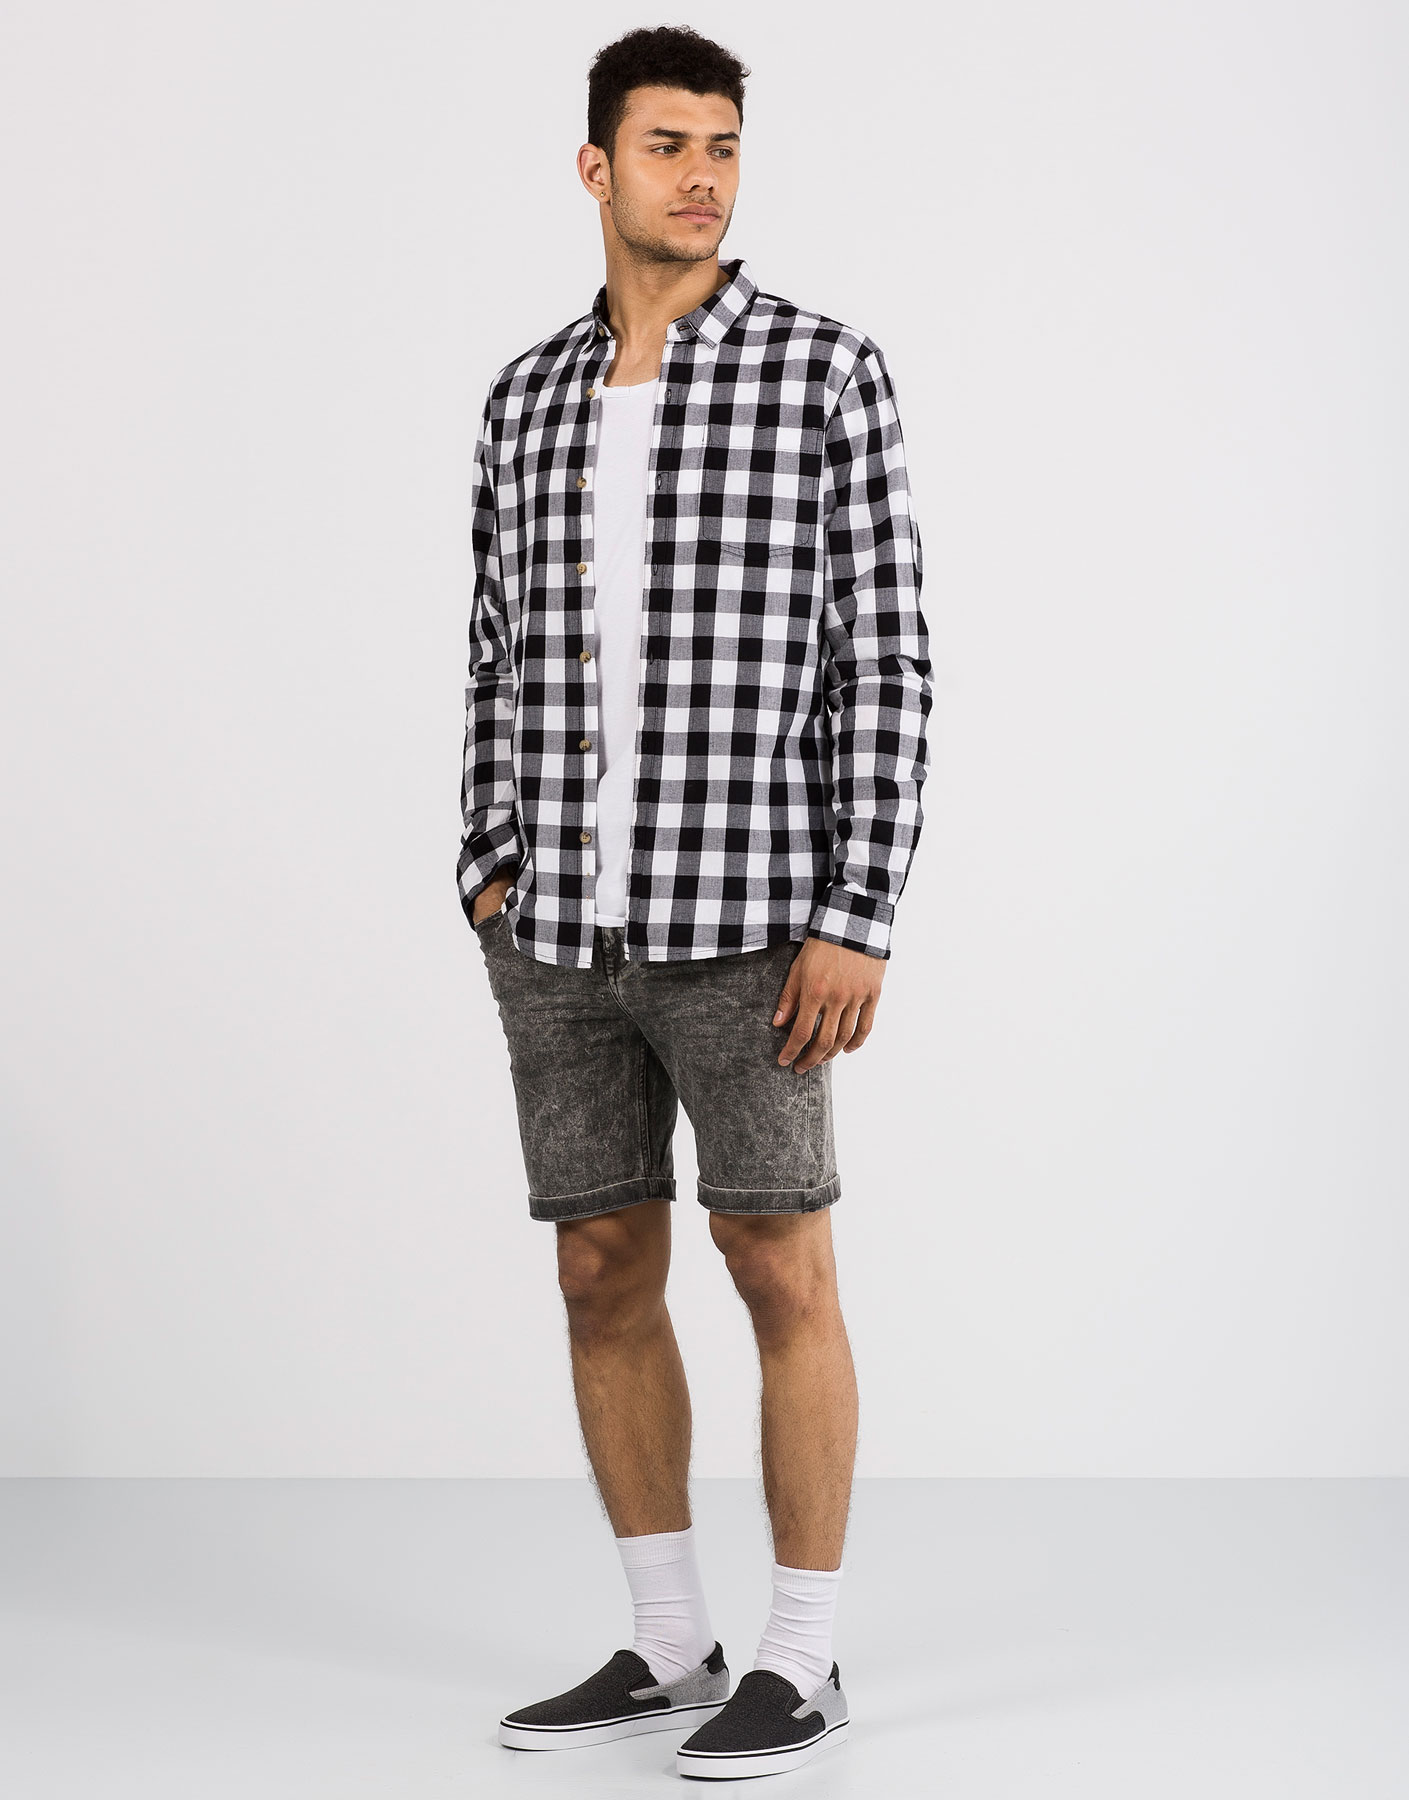 Basic chequered shirt